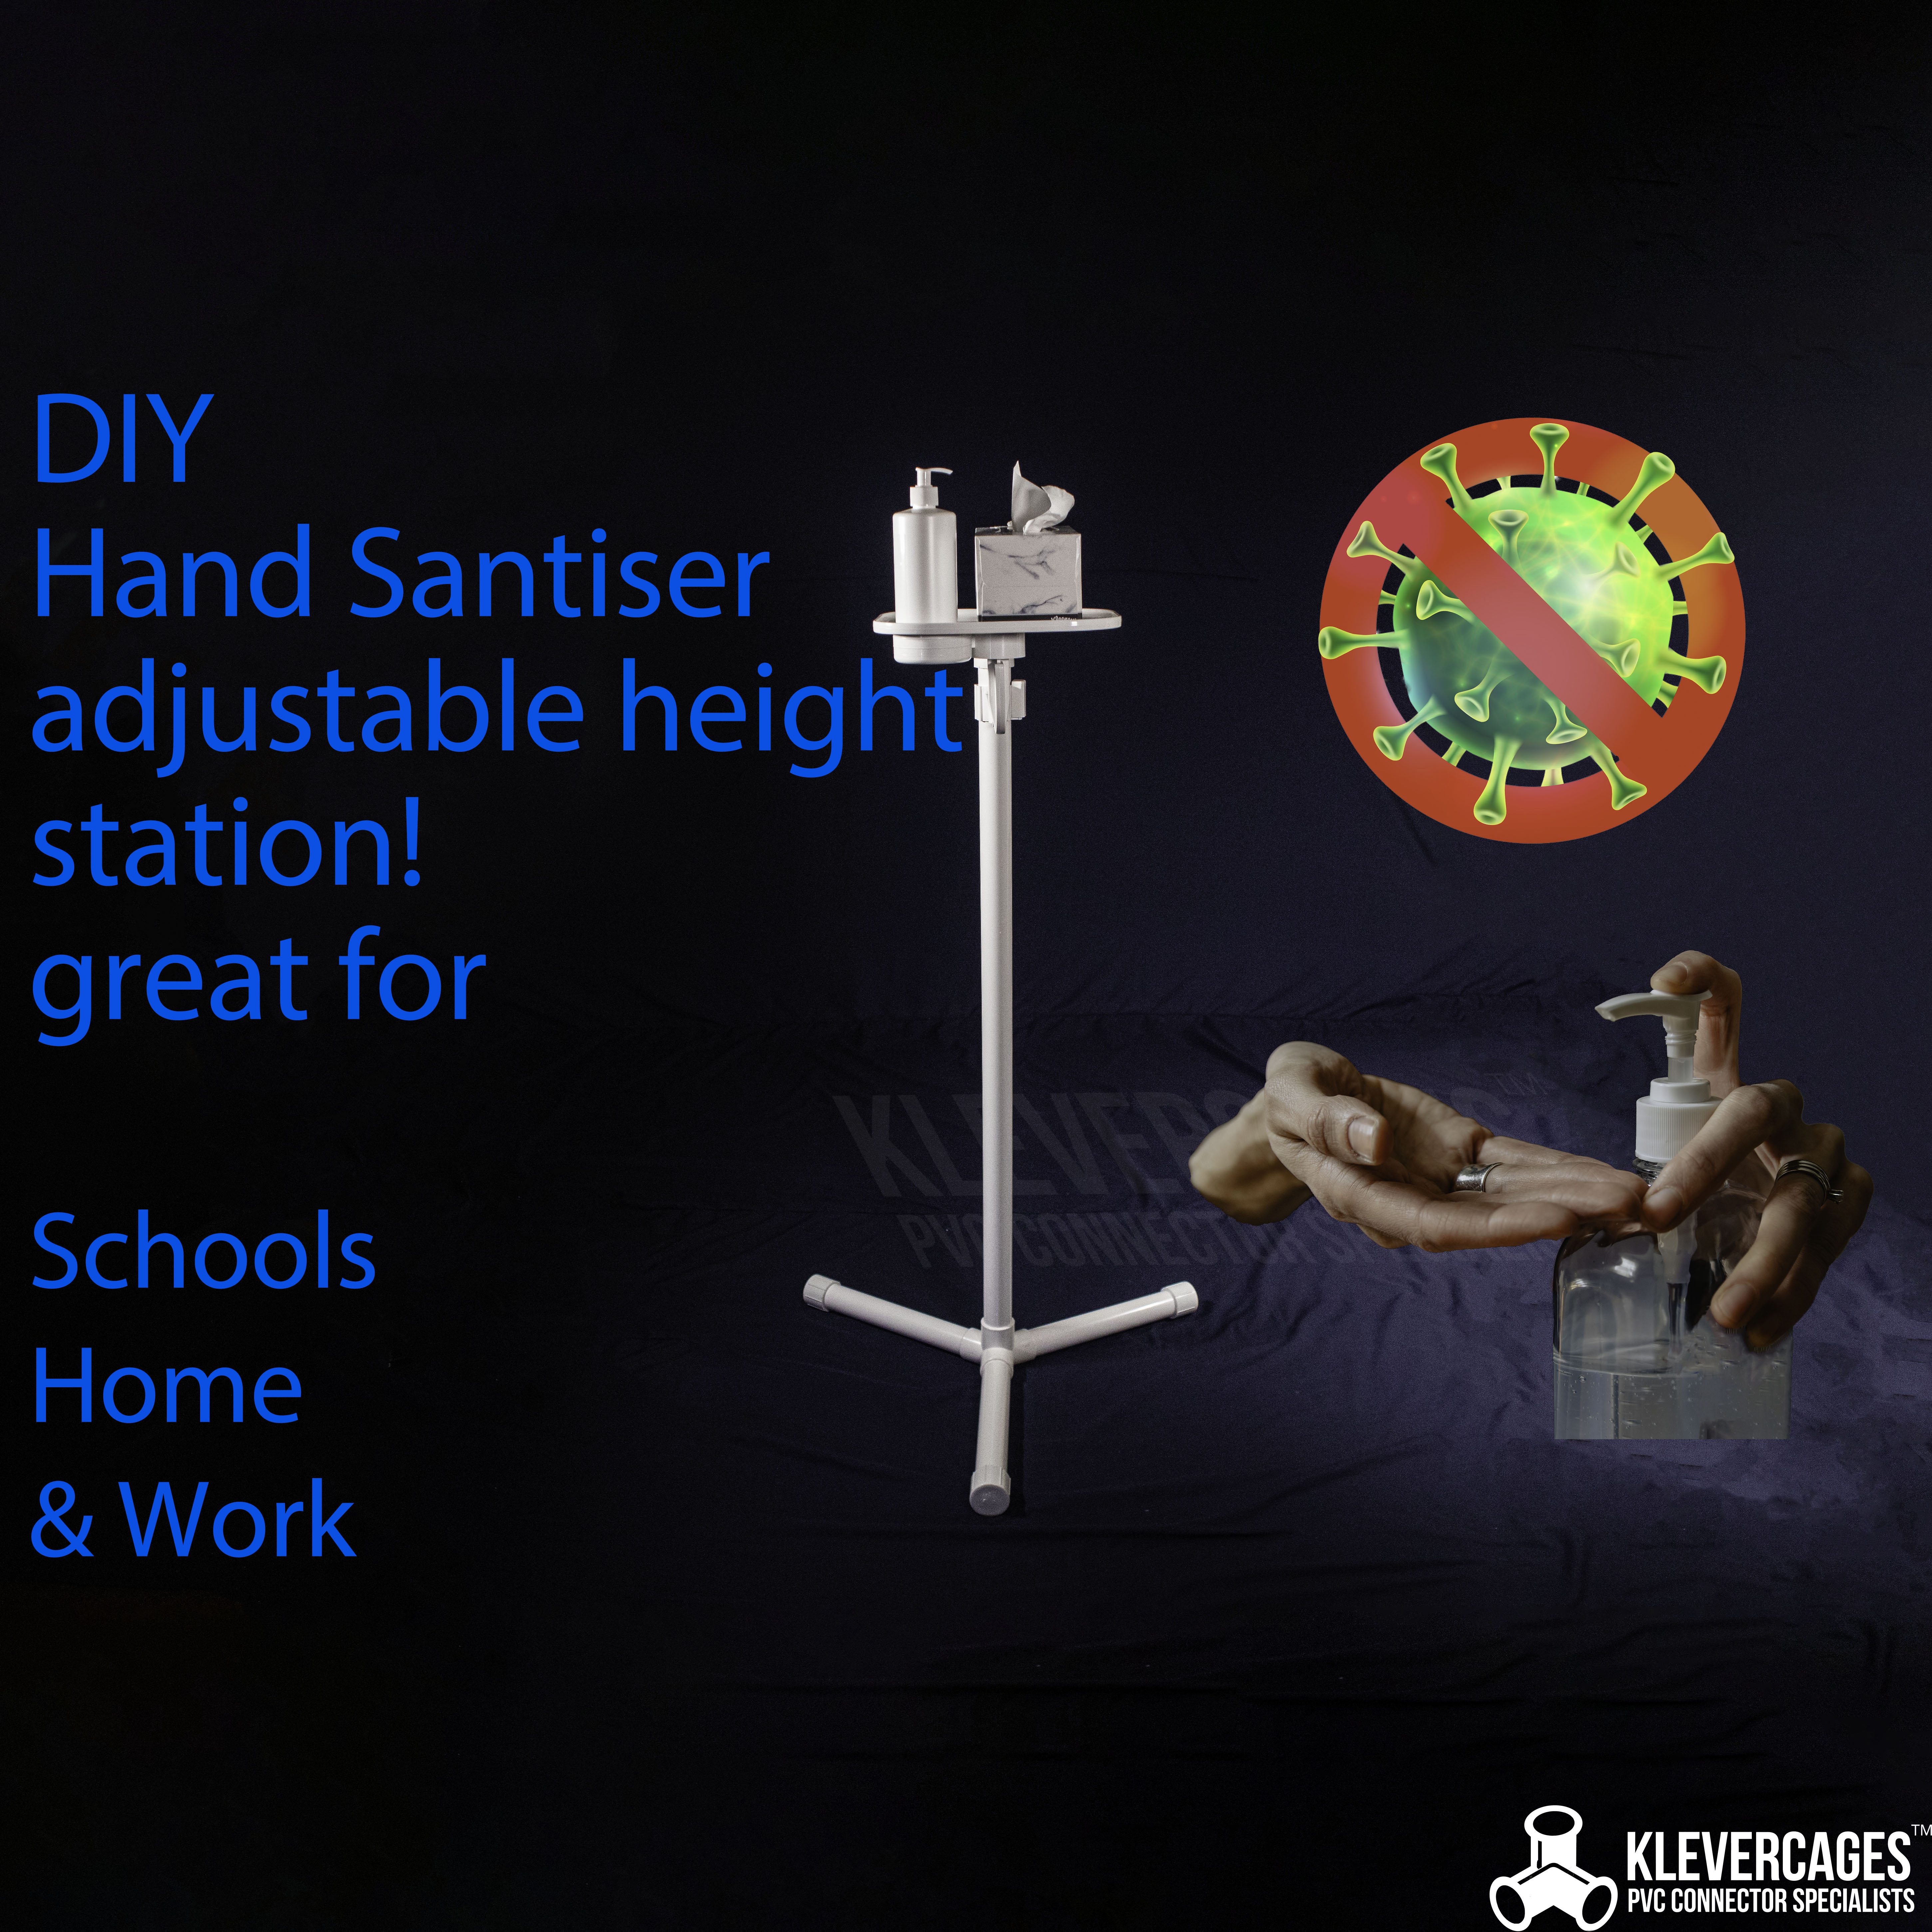 DIY hand sanitiser sanitizer station built with PVC pipe and connectors. Great for washrooms schools home and work